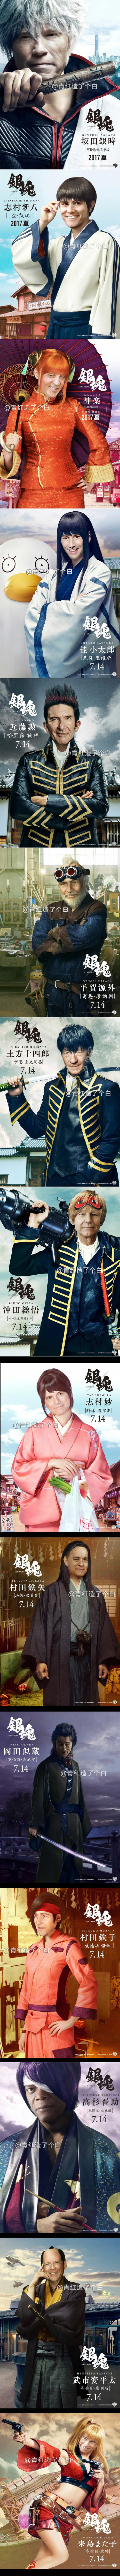 Gintama live action movie looks great